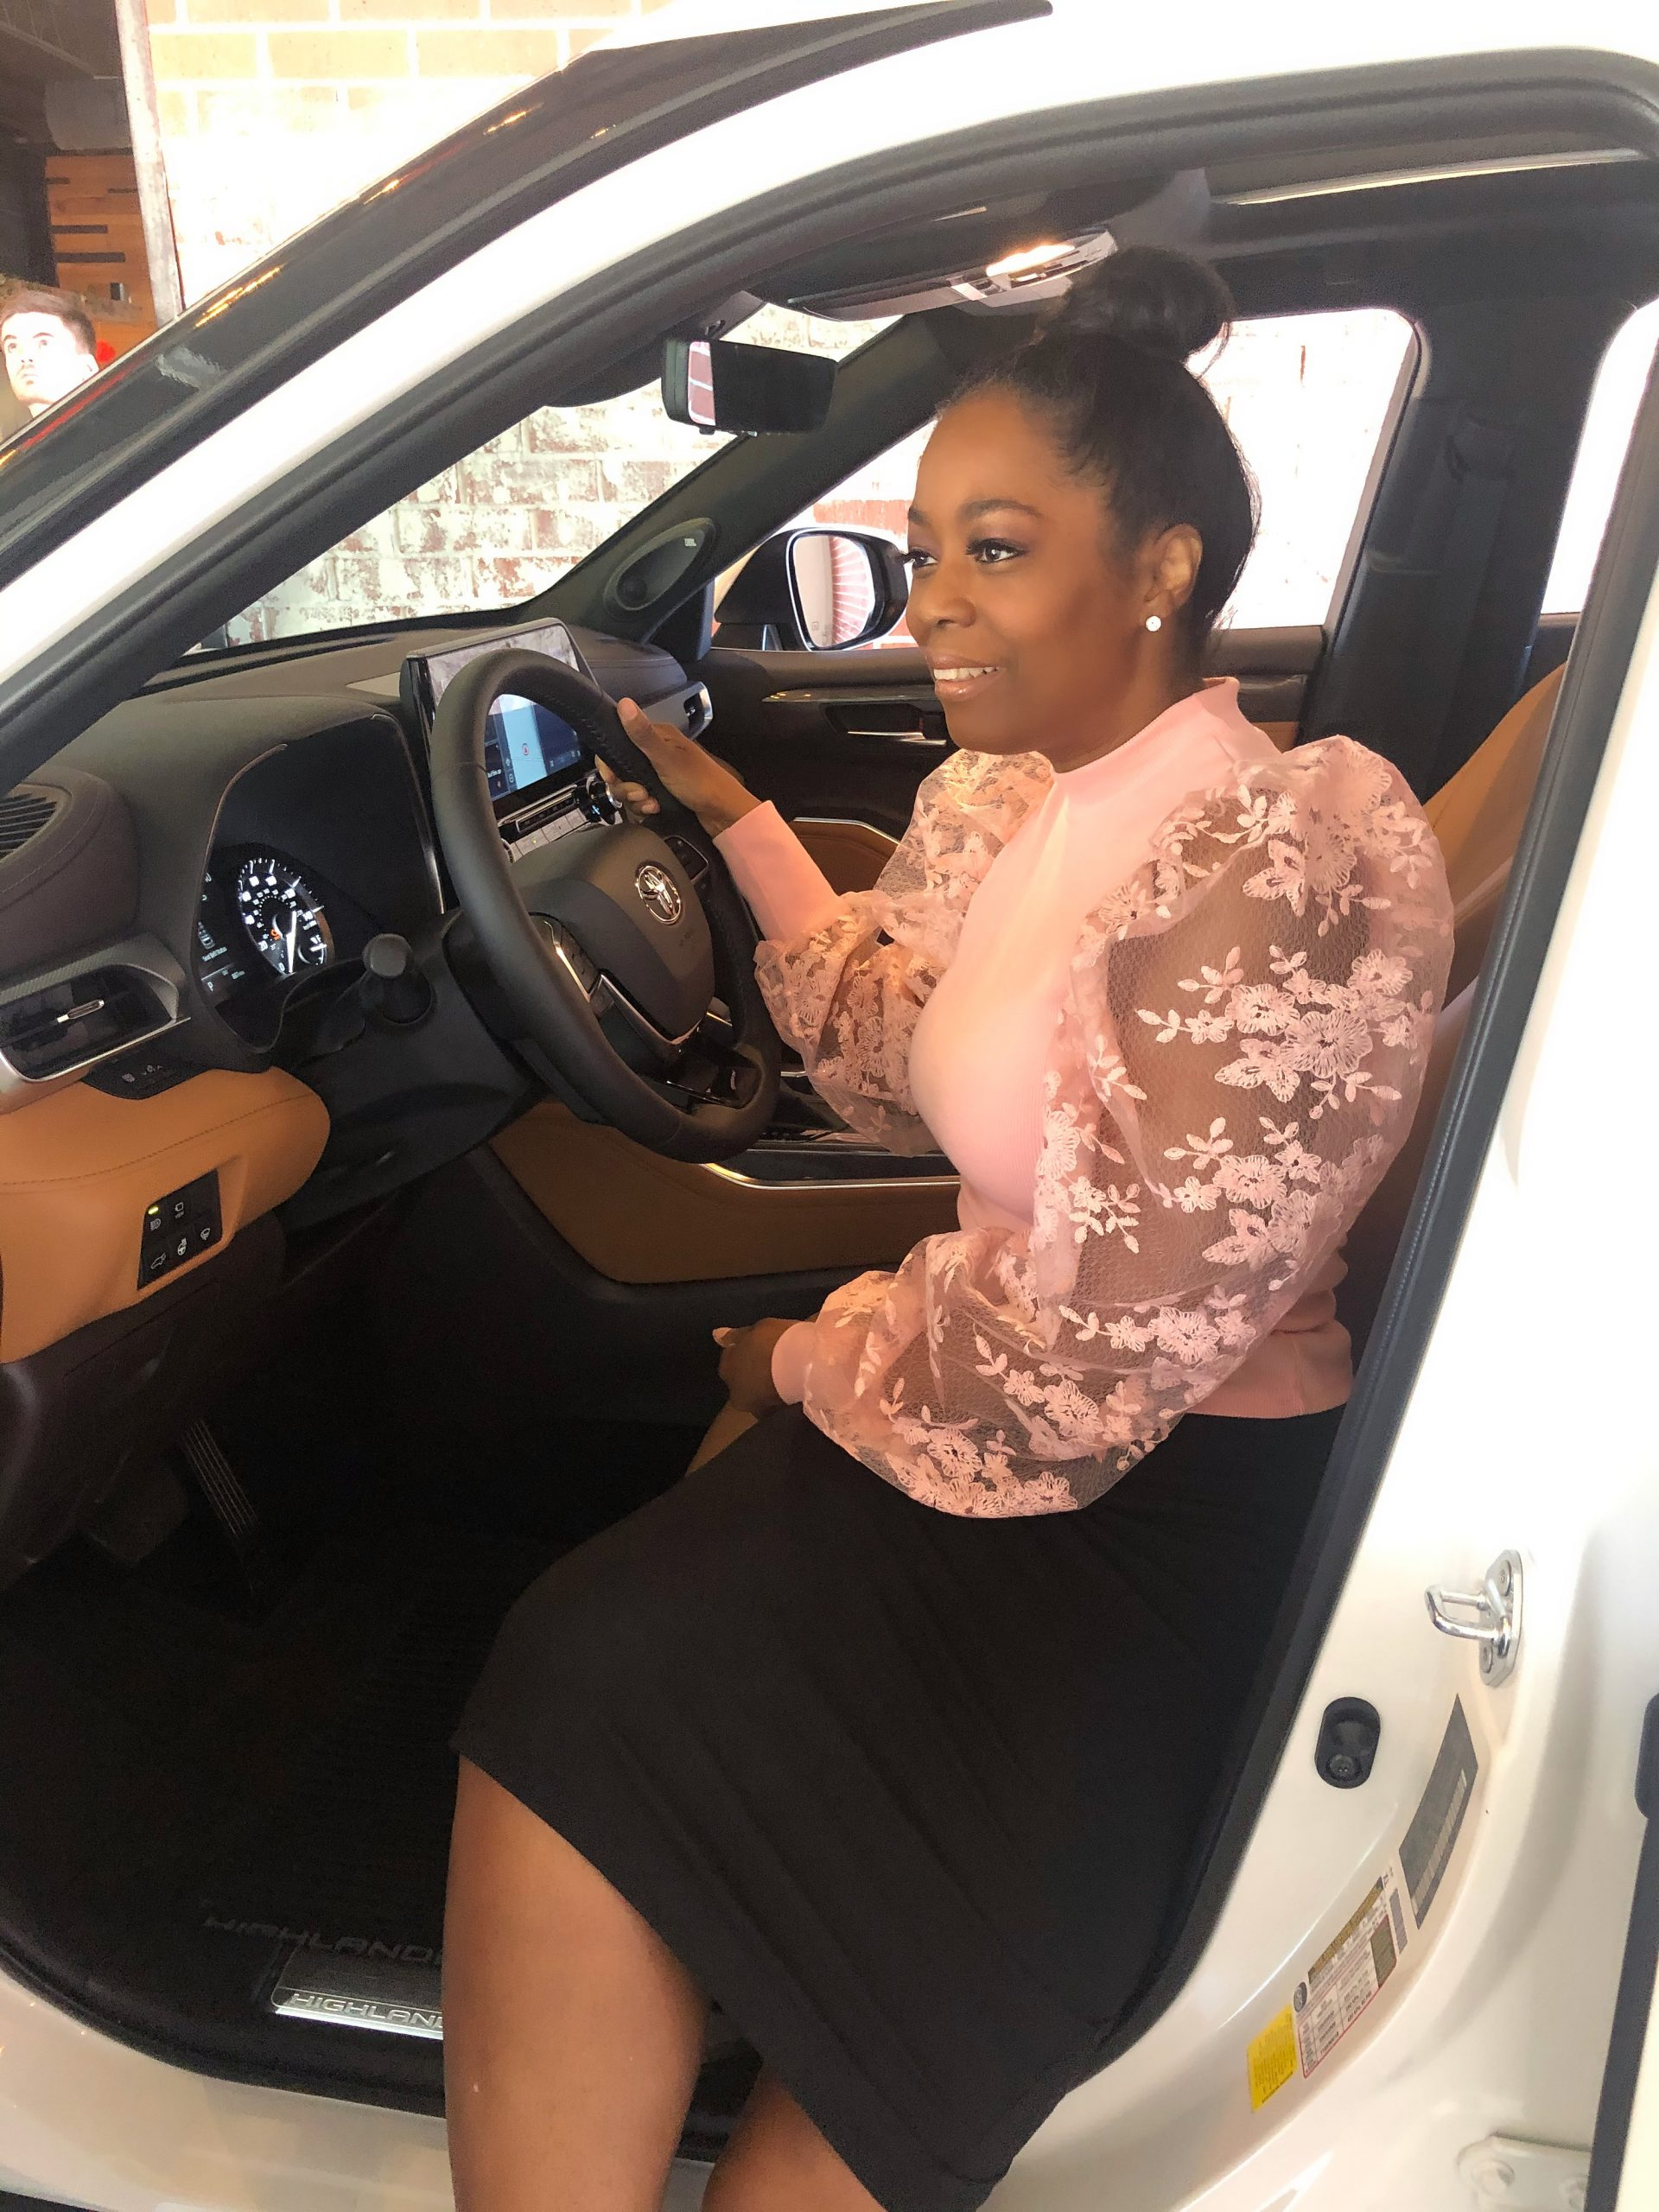 Toyota Exclusive Dine And Drive Luncheon And Experience With The 2020 Highlander